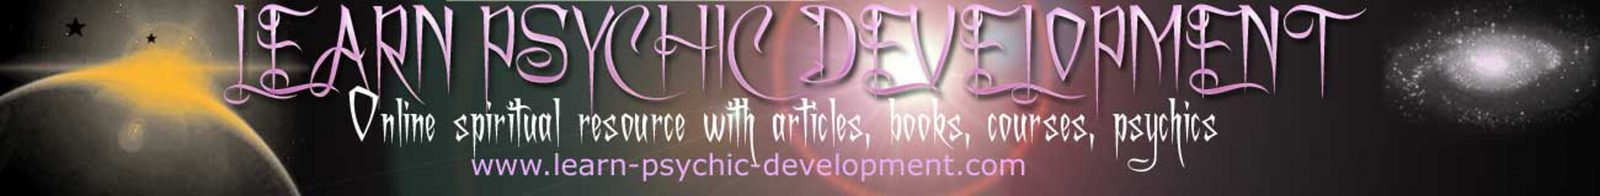 Learn Psychic Development